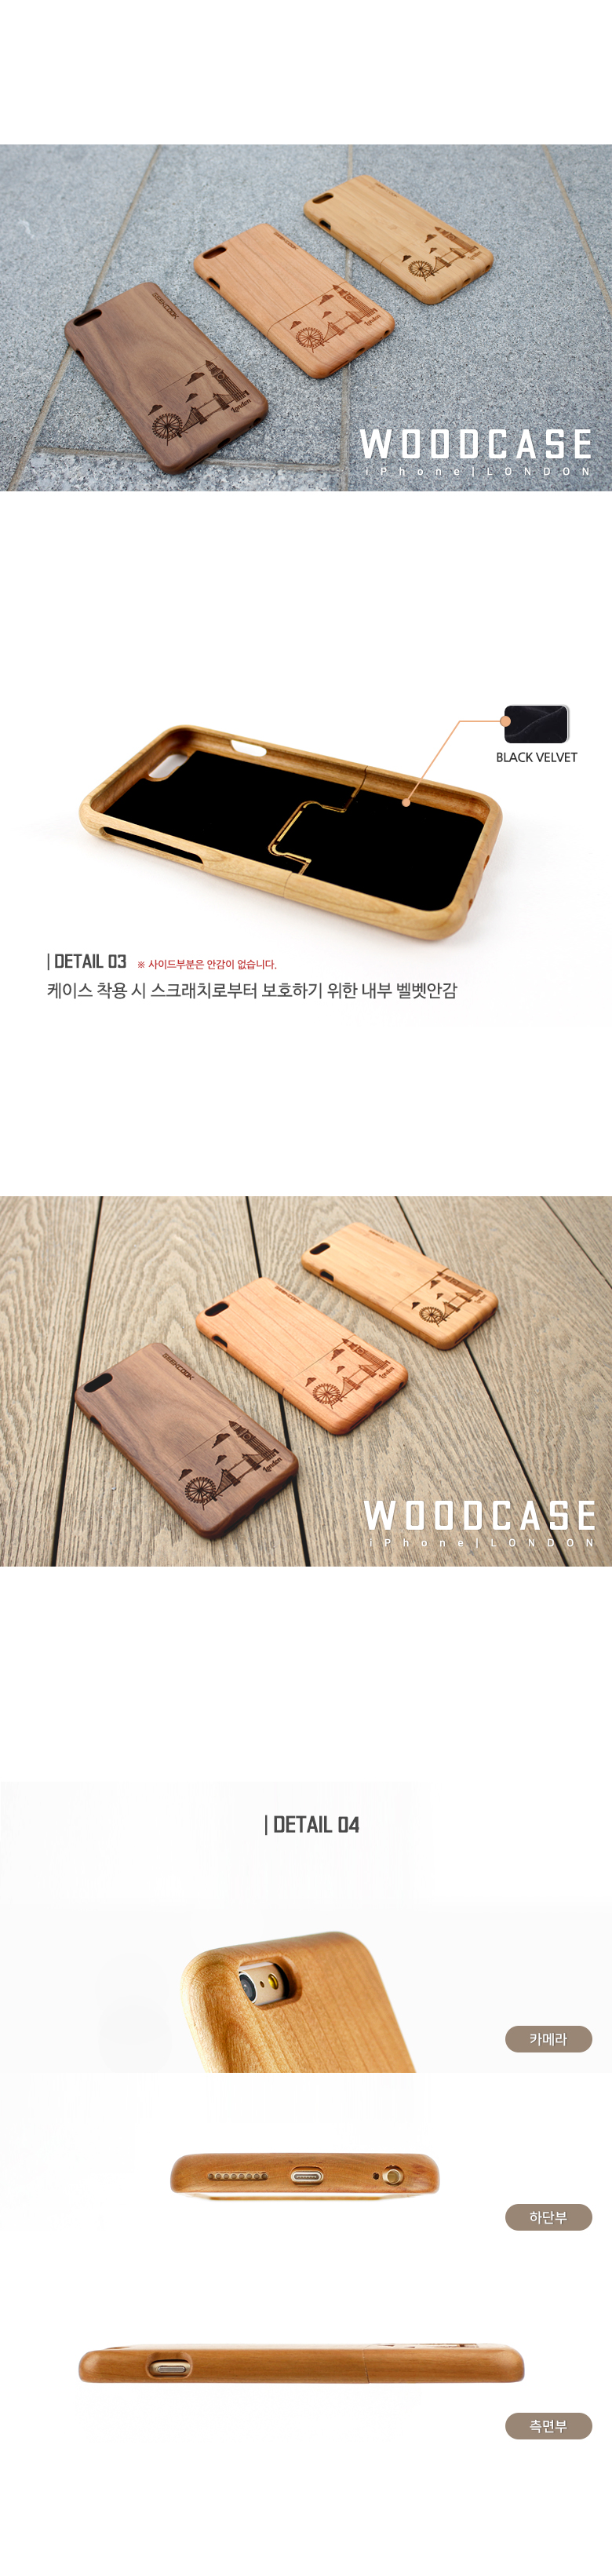 [ BISKET ] iPhone 6/6plus Landmark Wood Case London